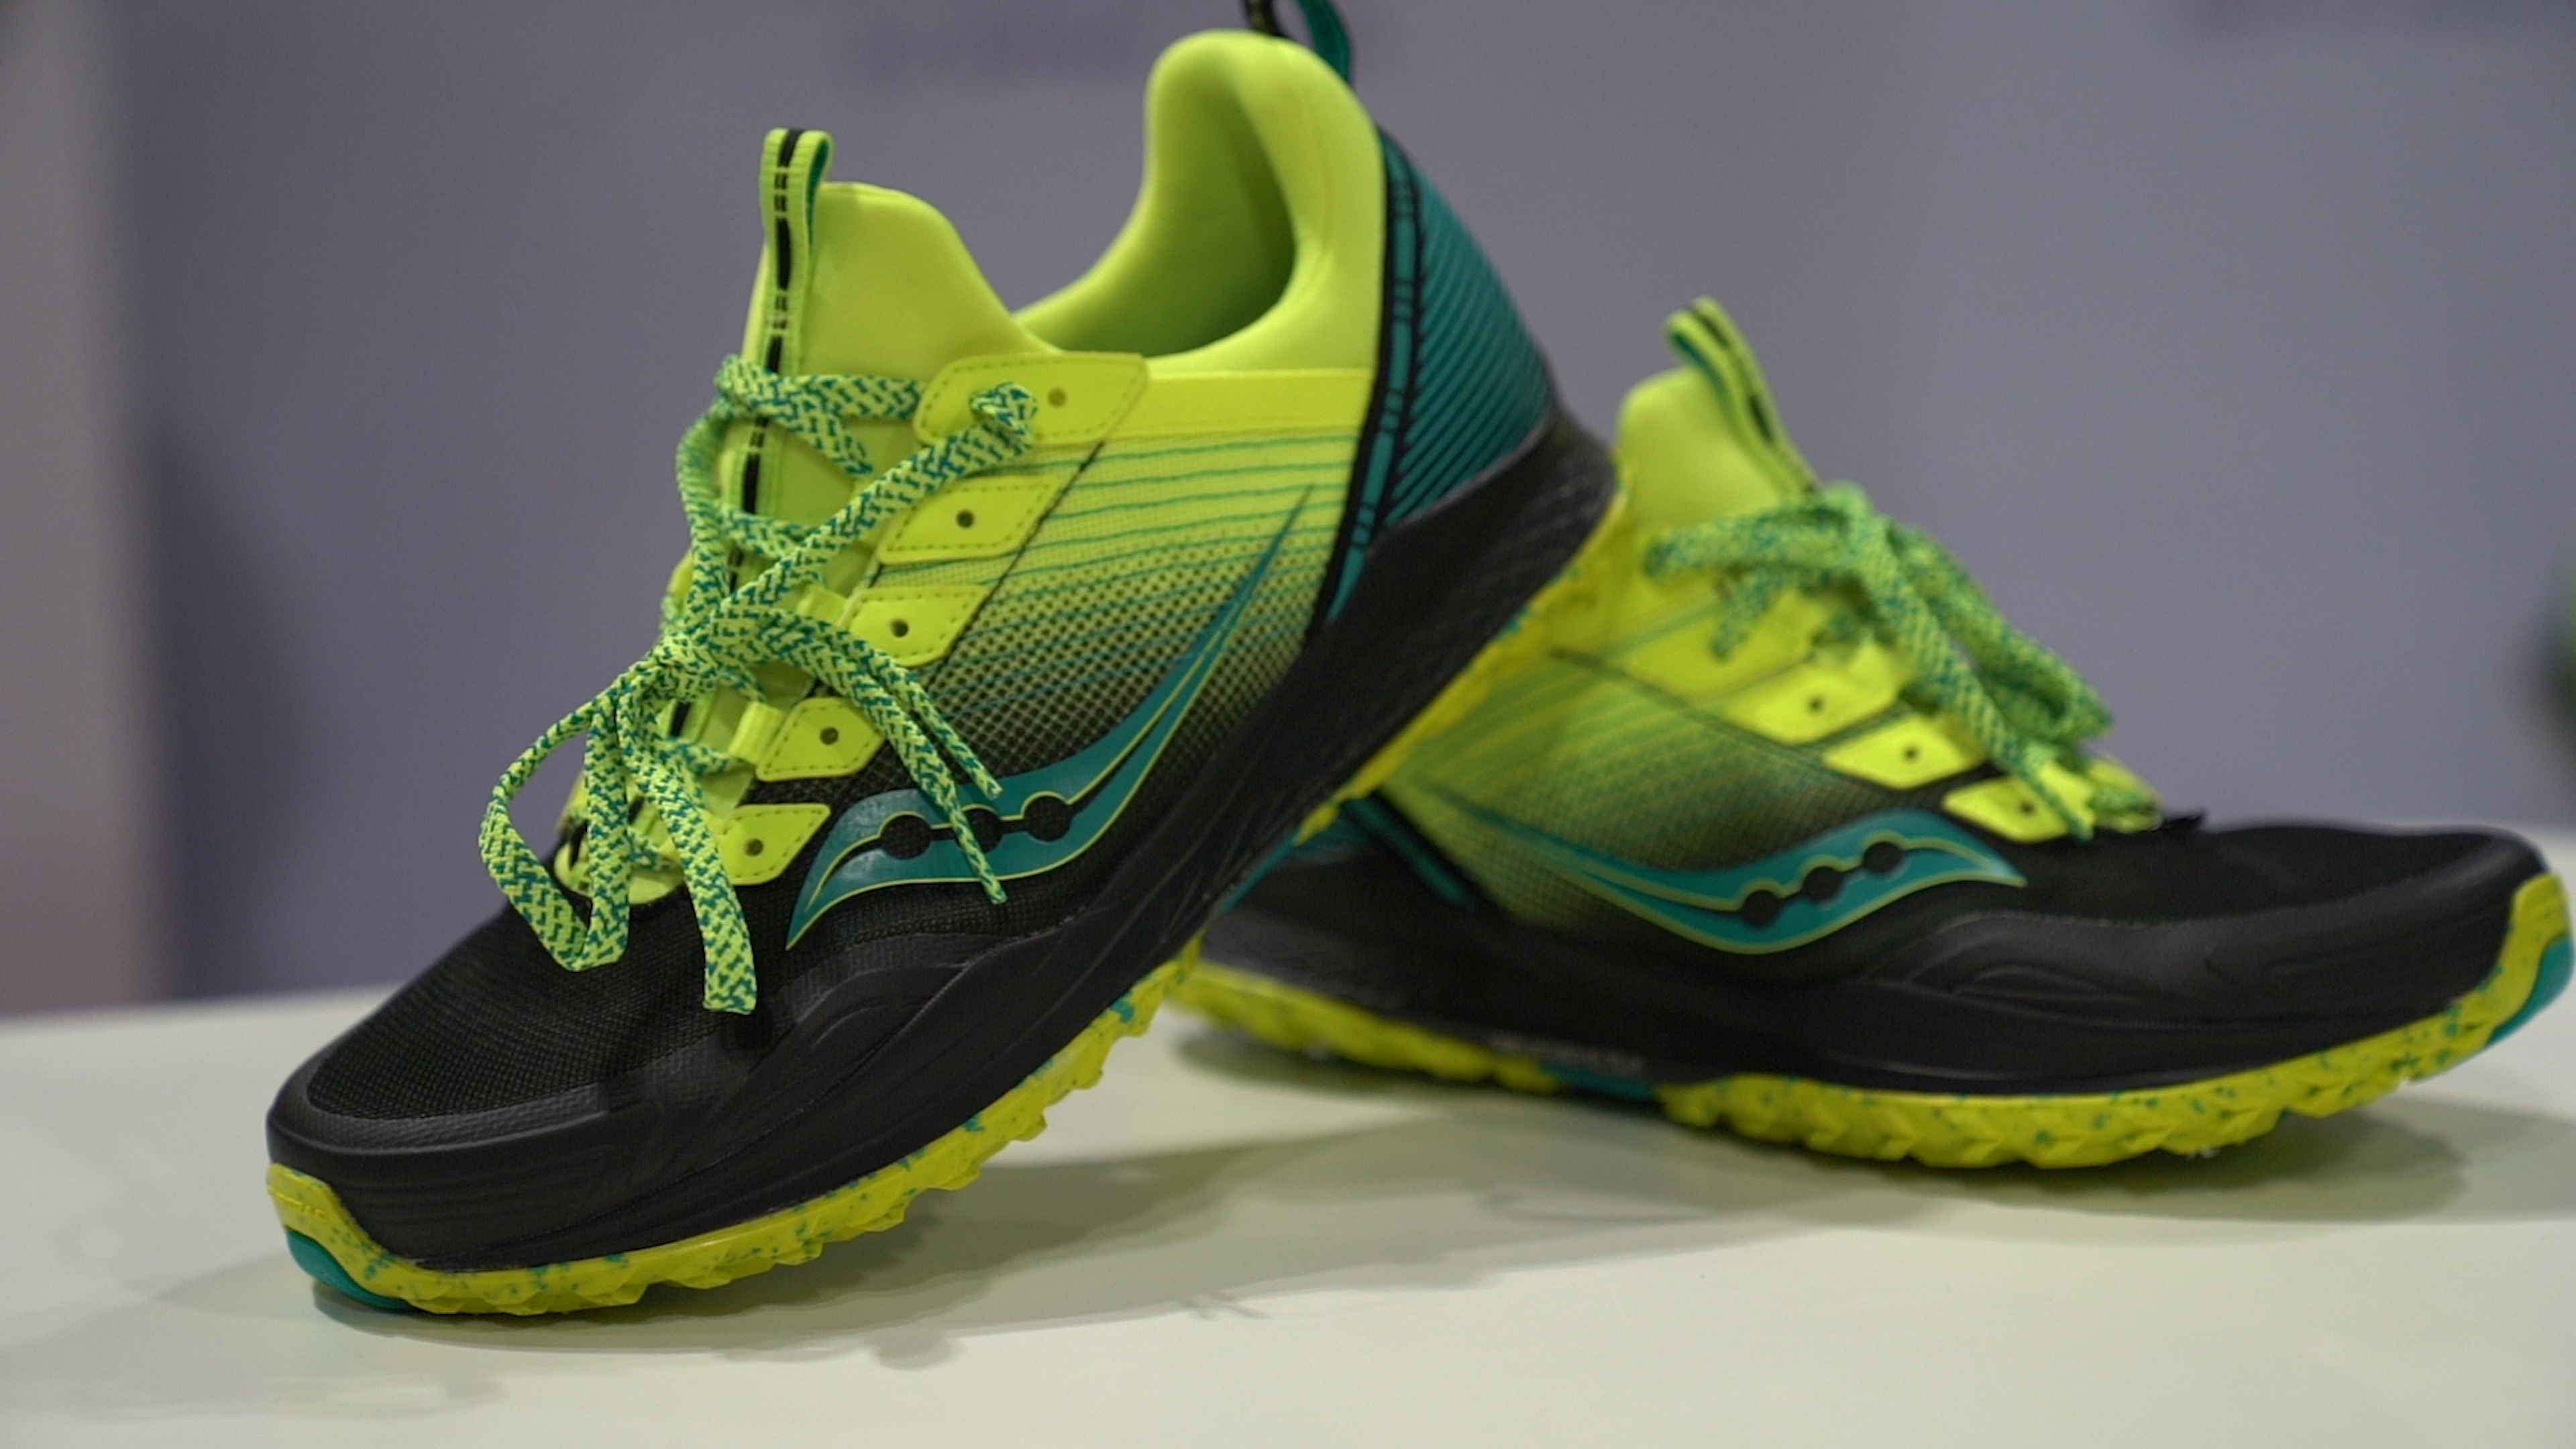 fc1b6ceaf Saucony Mad River TR shoe